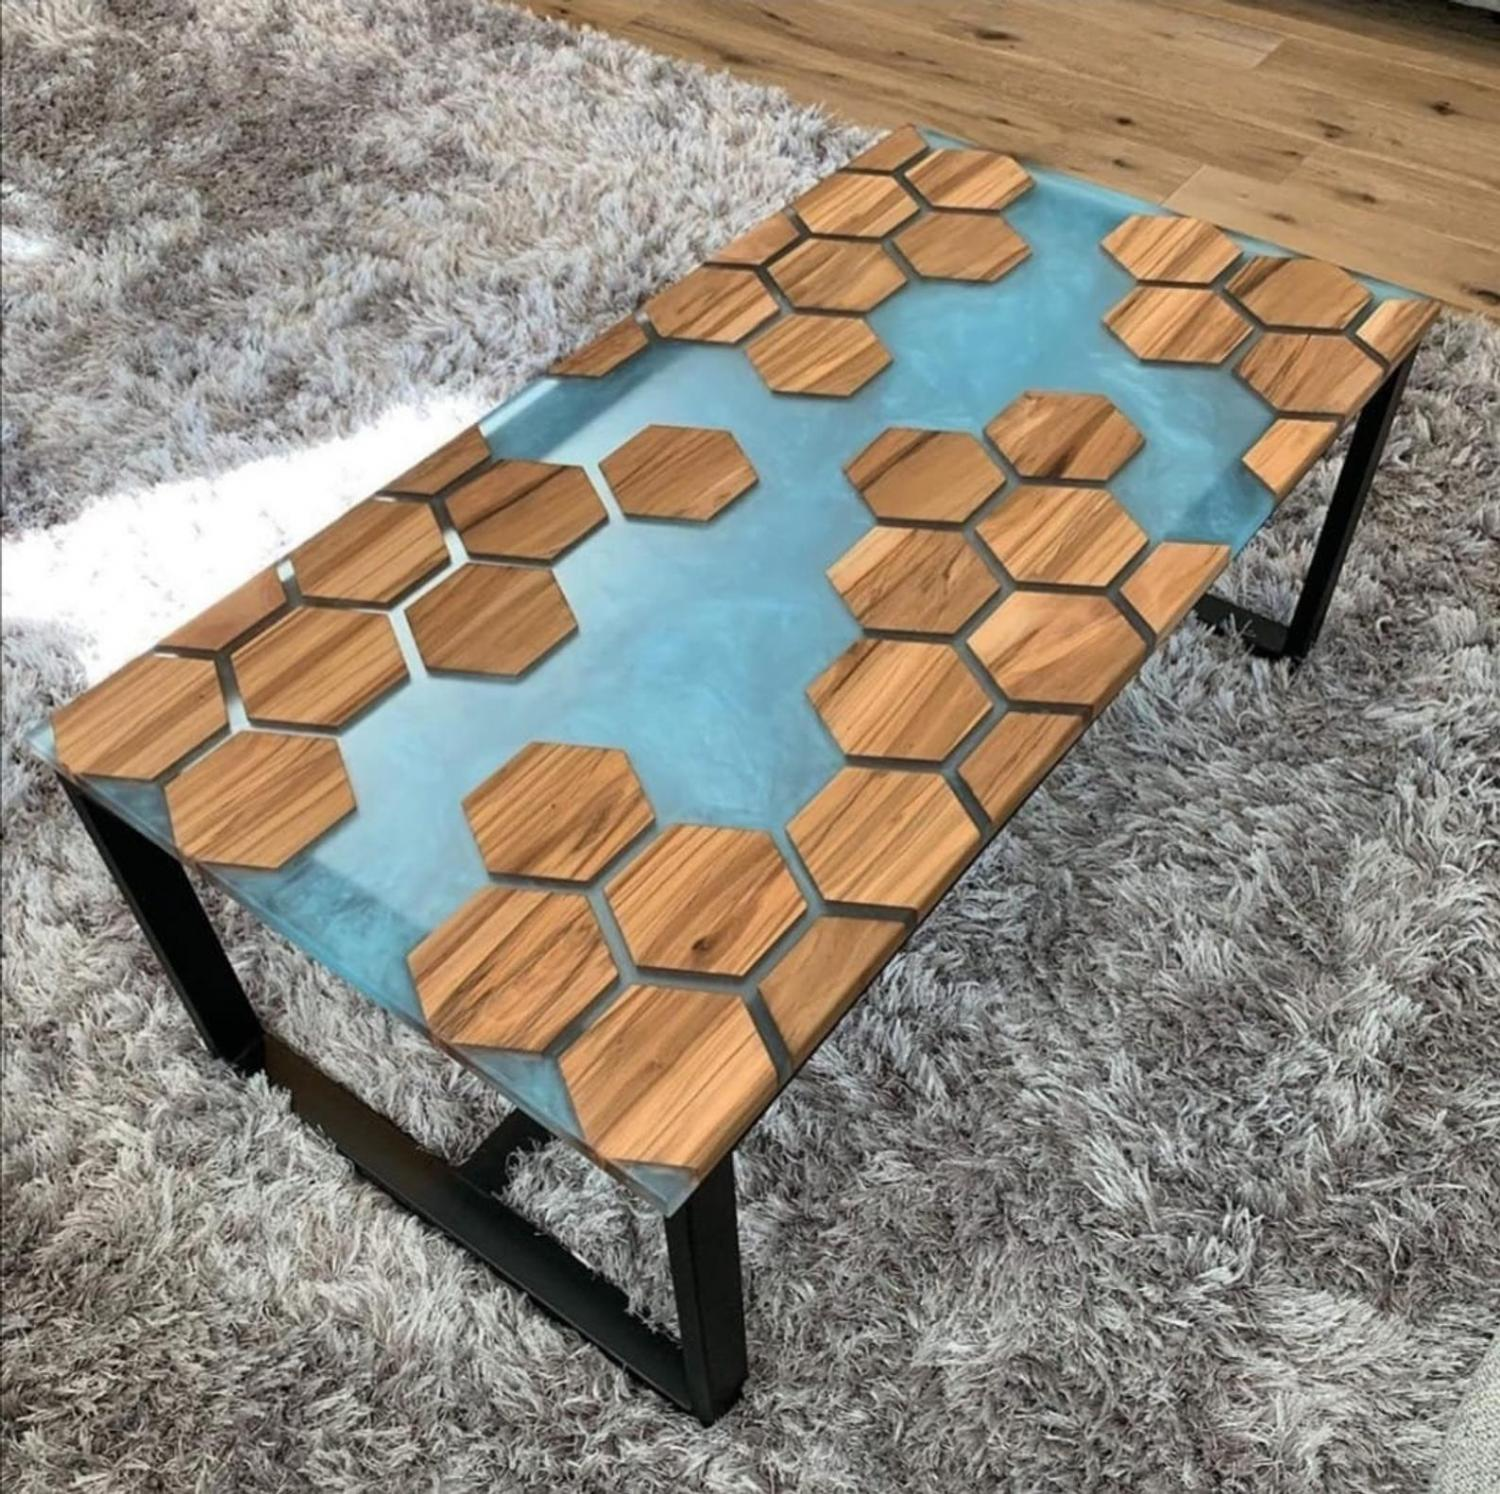 A stunning epoxy table made with wooden polygons with blue resin in-between